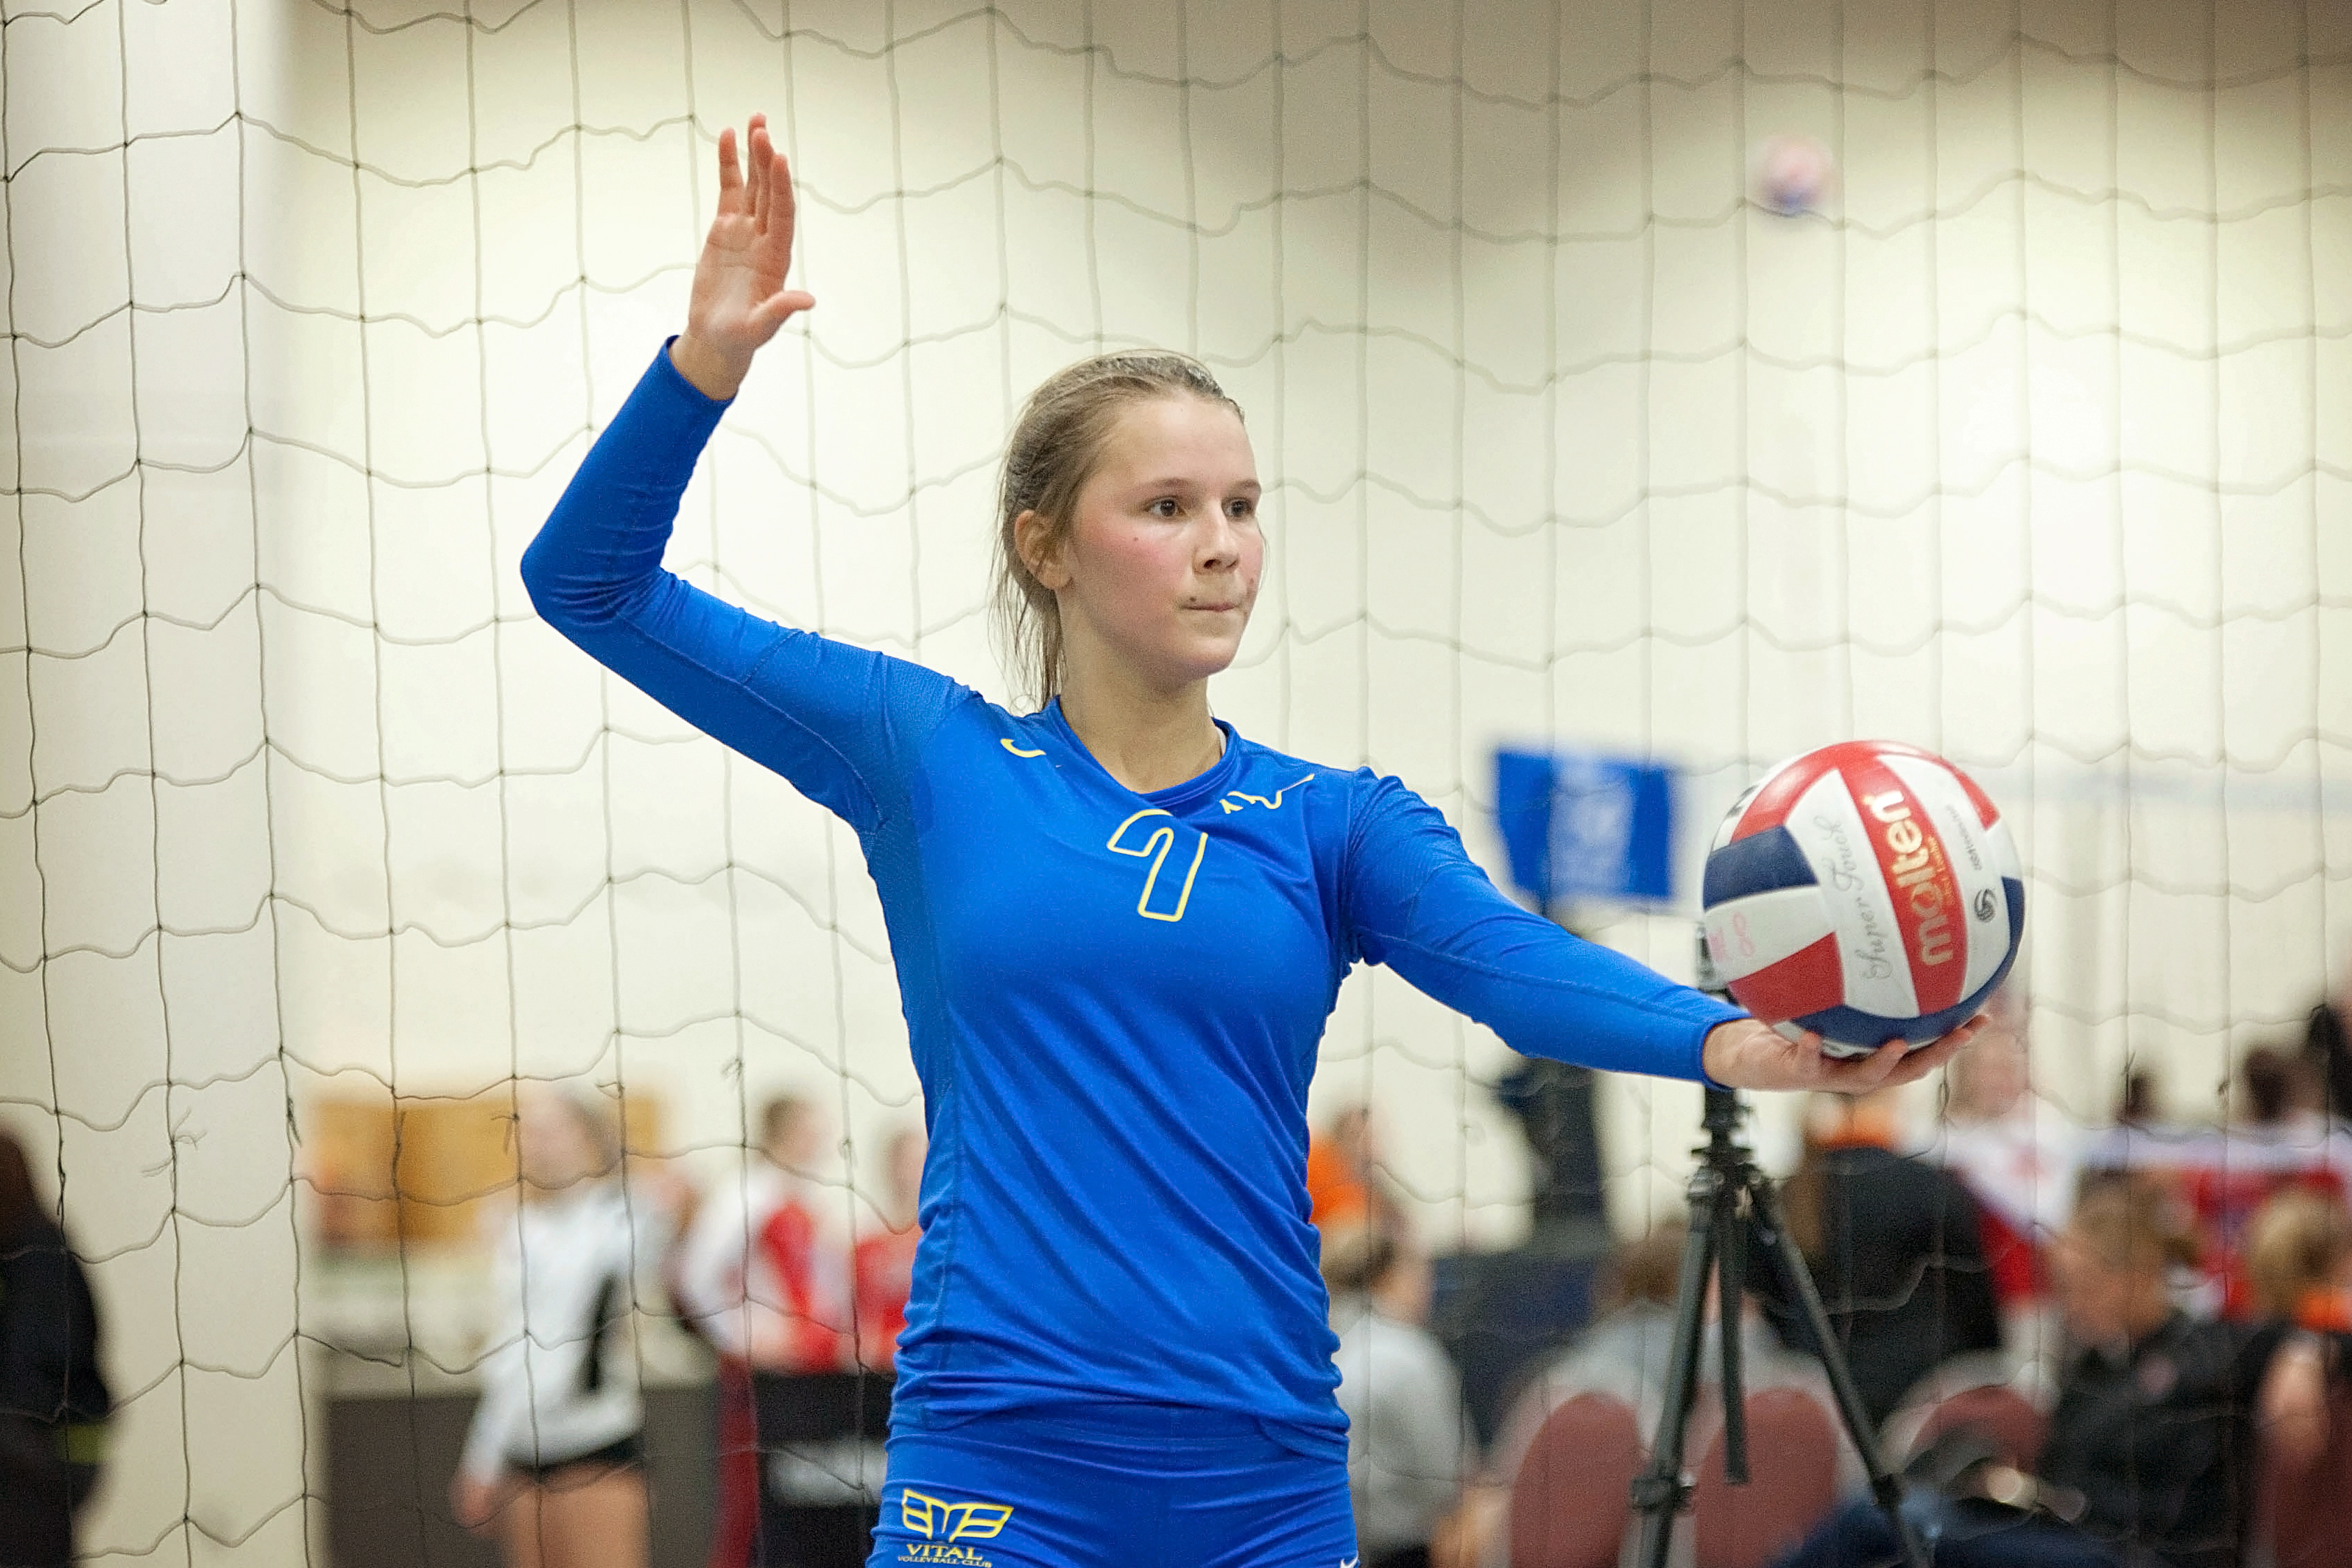 Vitall Volleybal - Brynn serving